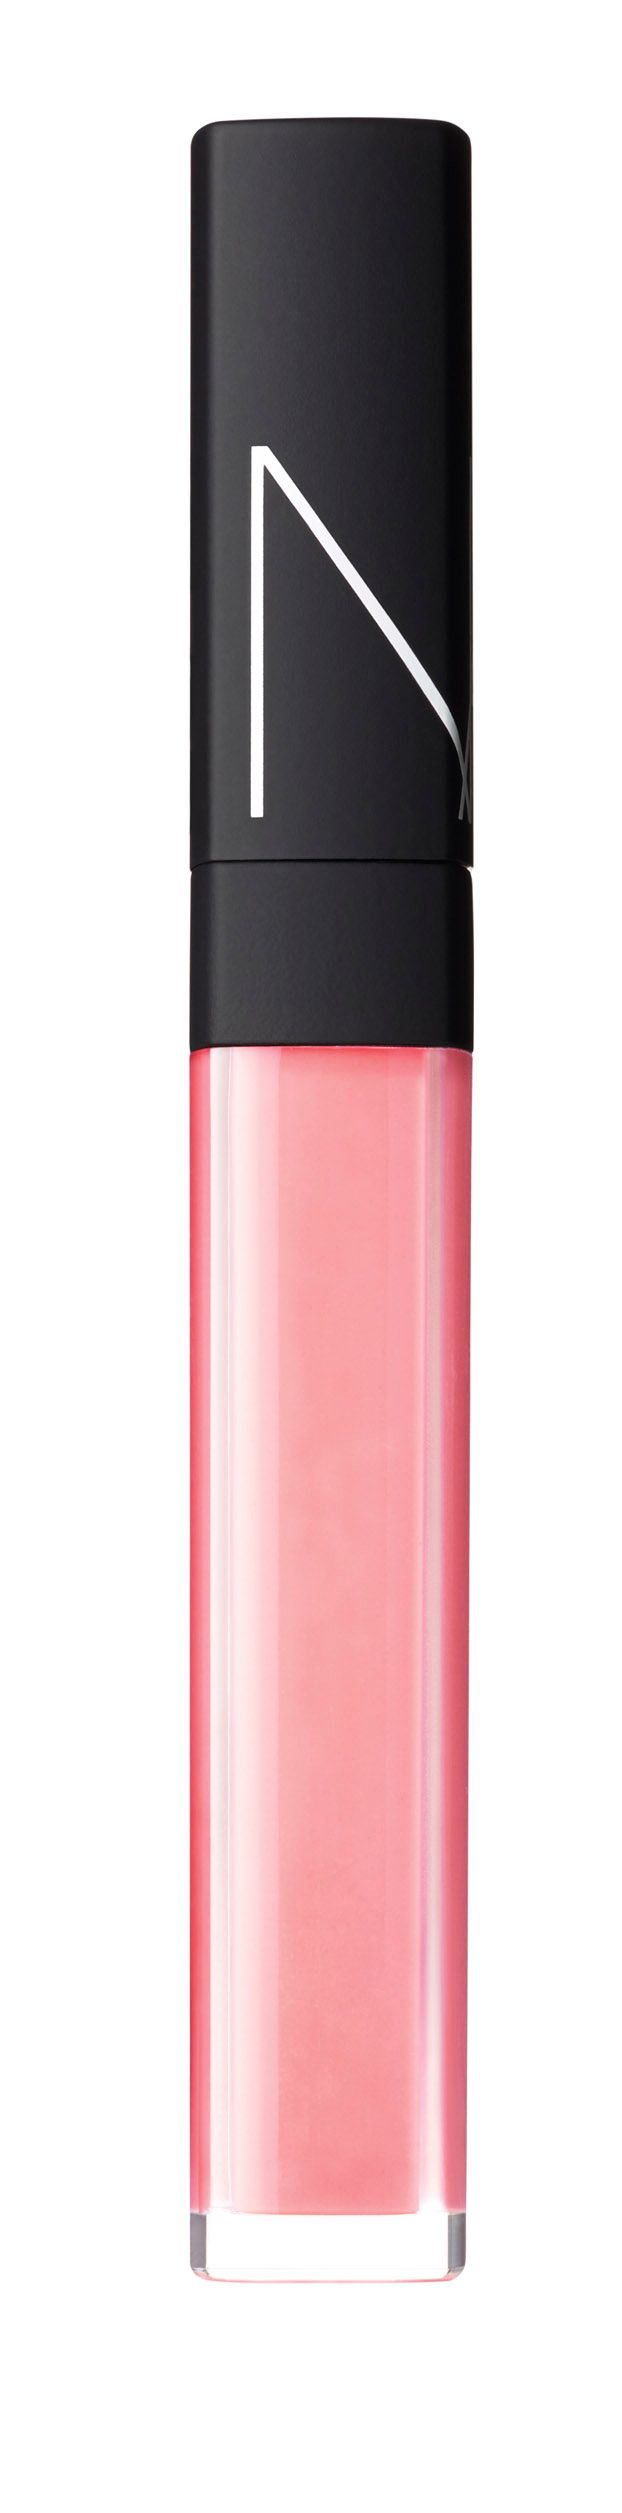 Nars Cosmetics Lip Gloss Turkish Delight